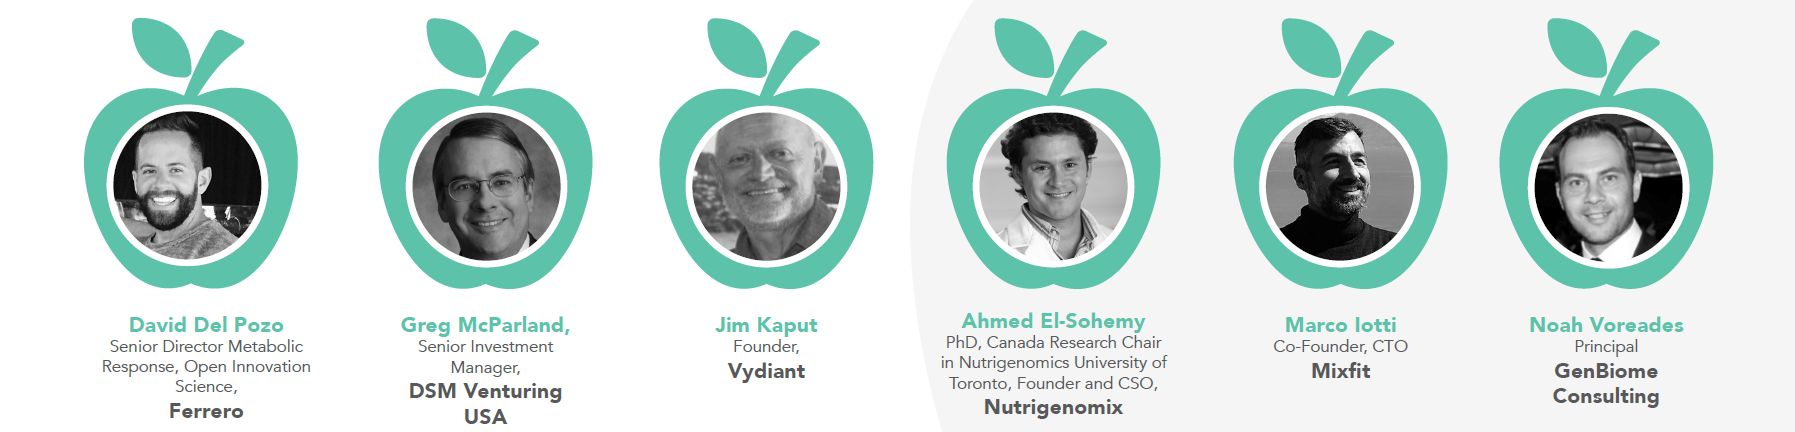 NutrInnovation Selection Committee